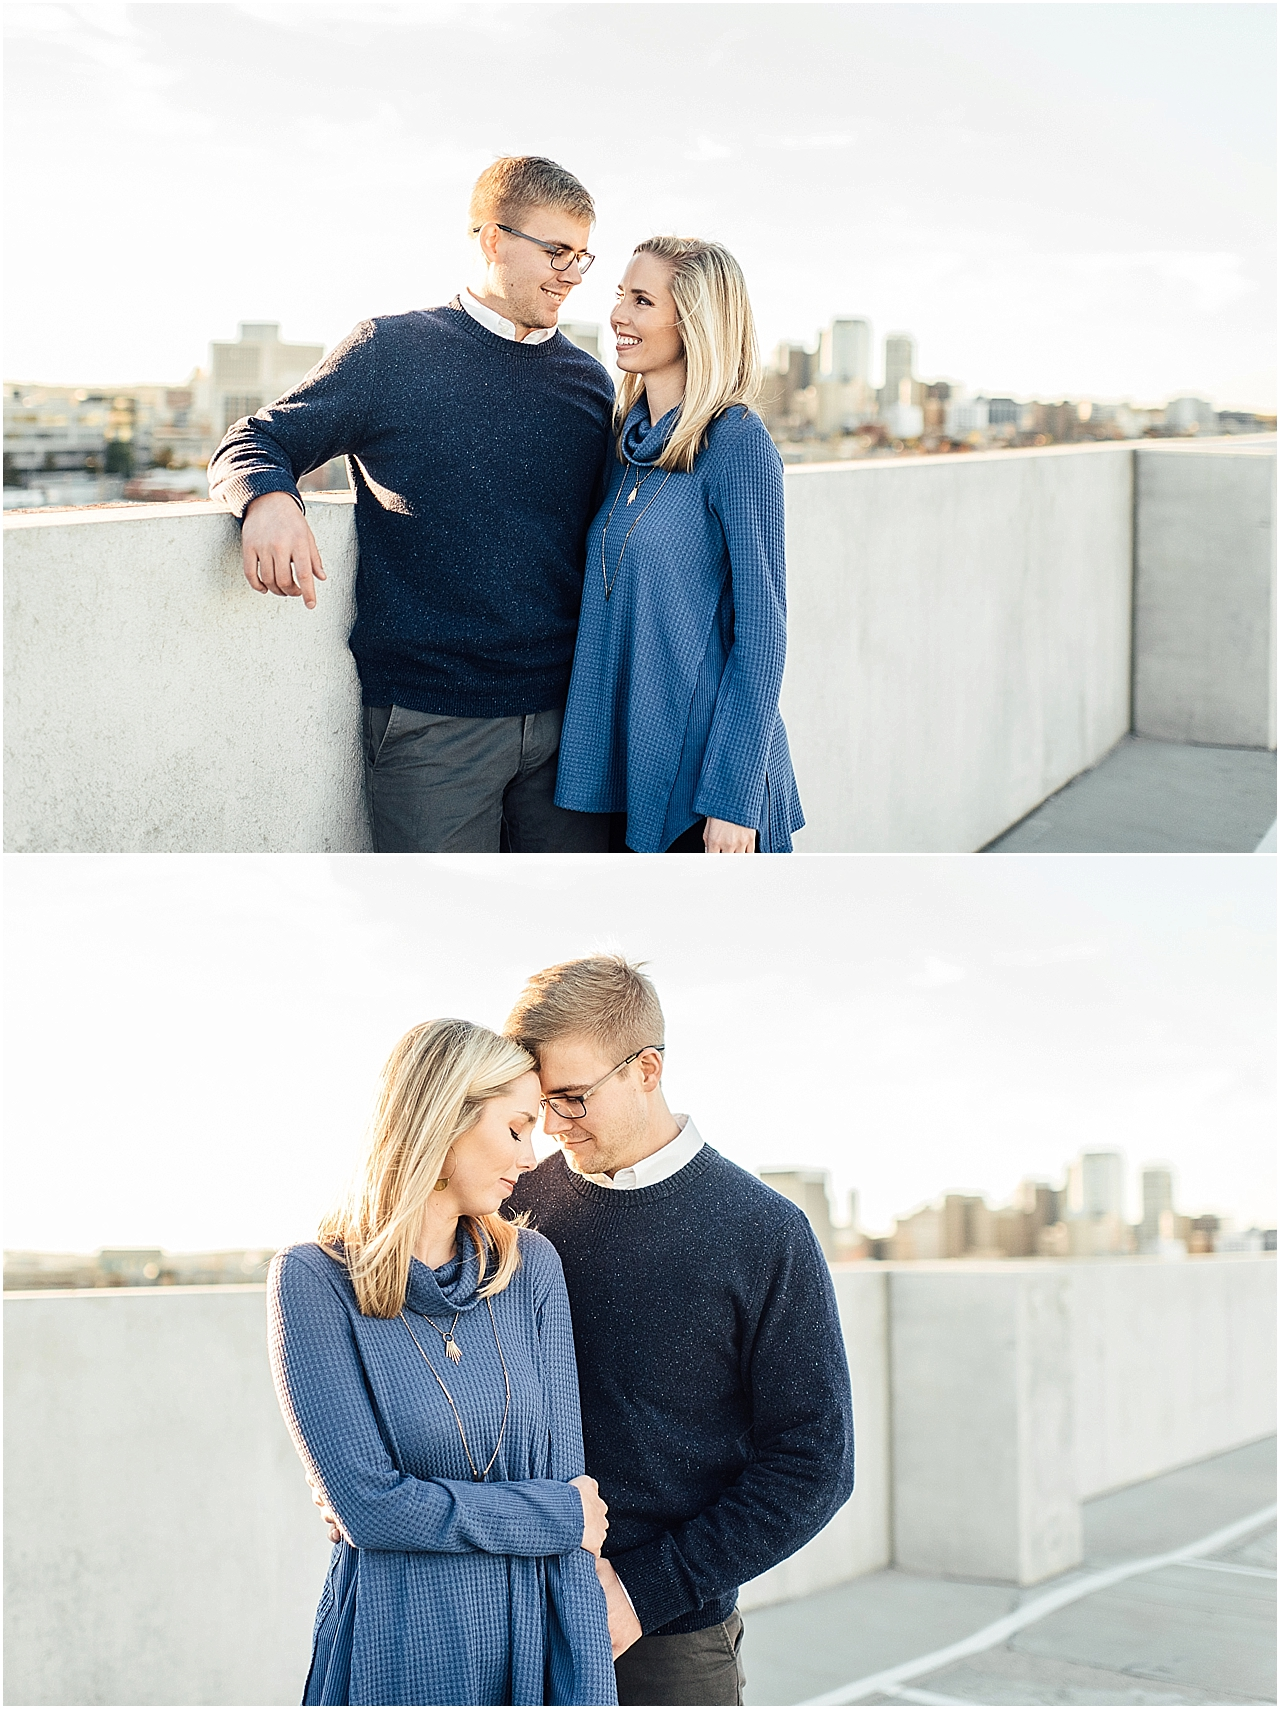 Lindsey Ann Photography -Engagement session at the Botanical Gardens in Downtown Birmingham